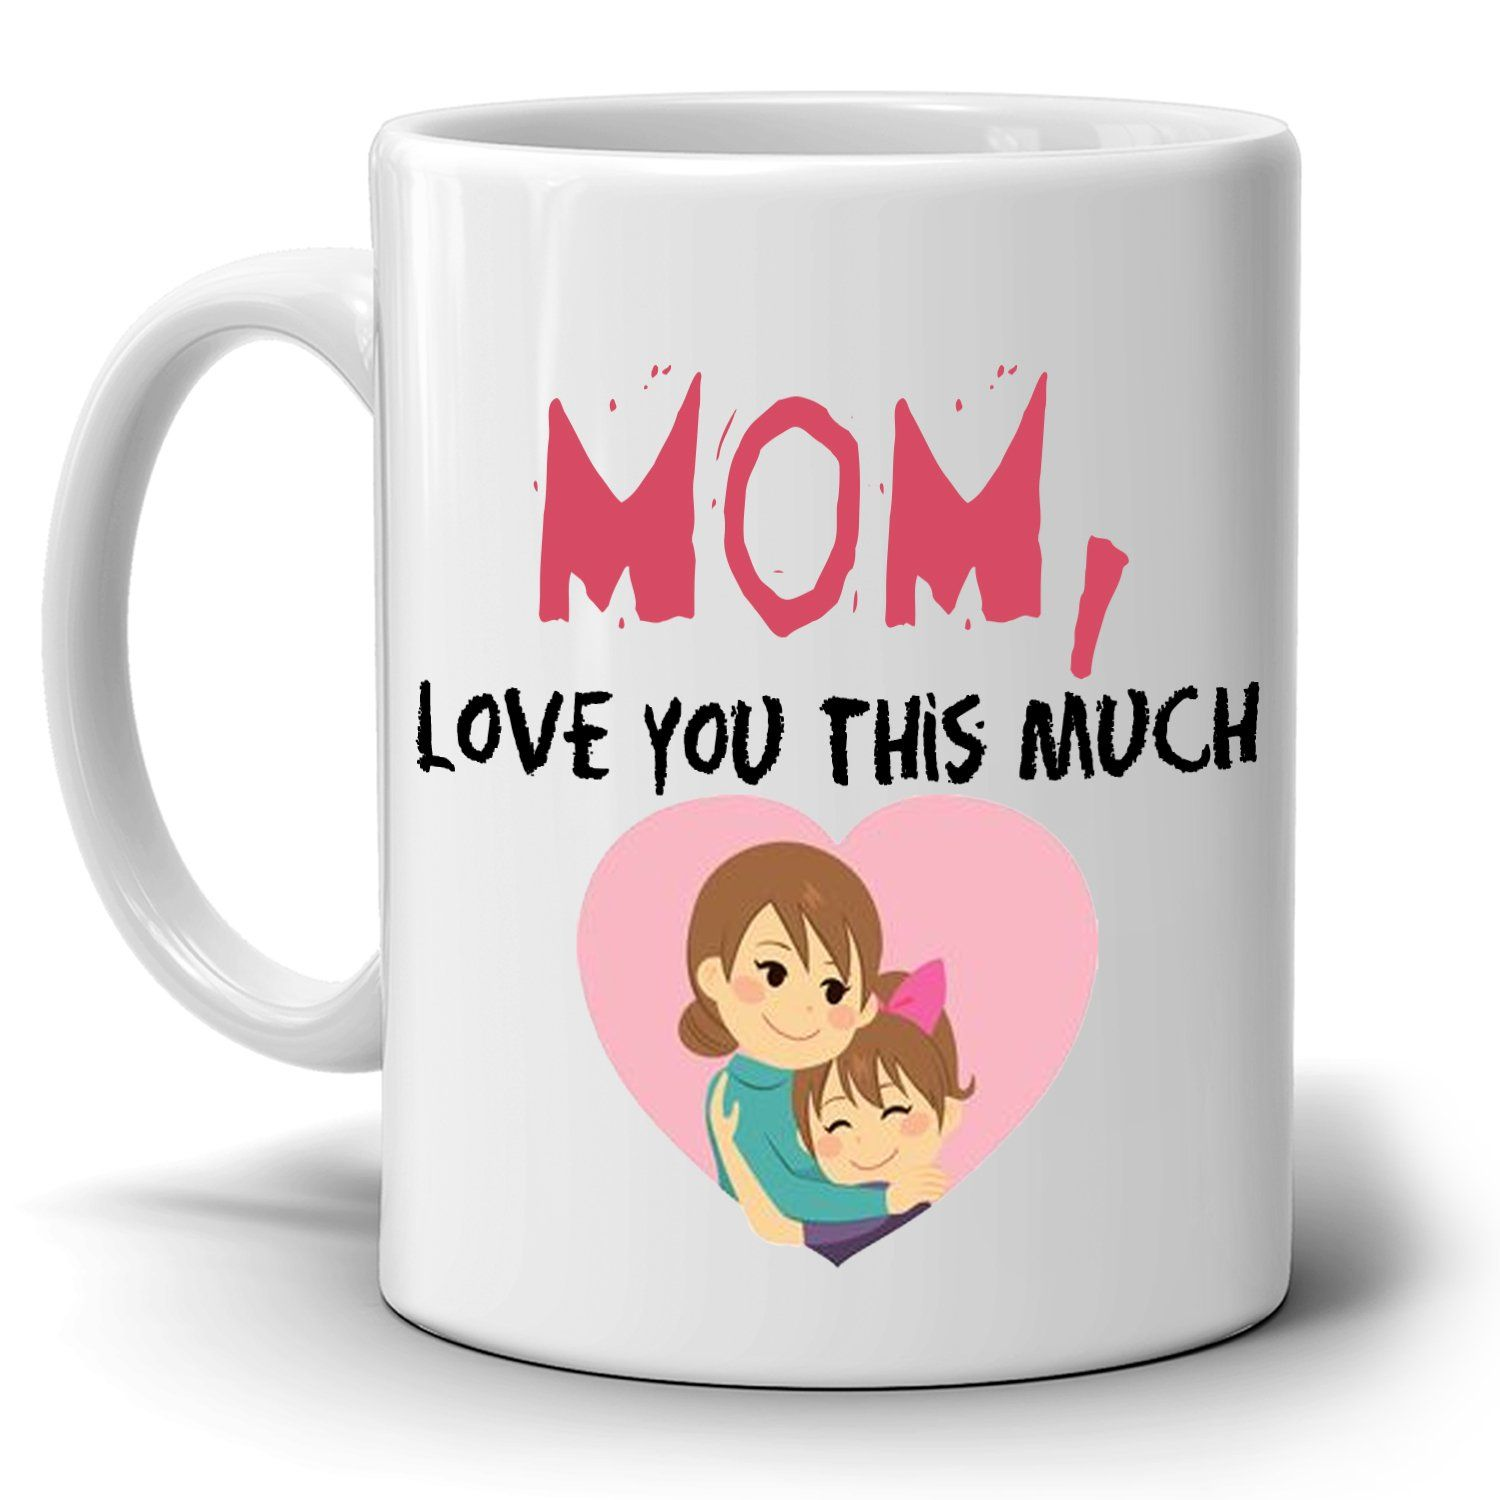 Cute Mothers Day Birthday Gifts Mug from Daughter Mom Love